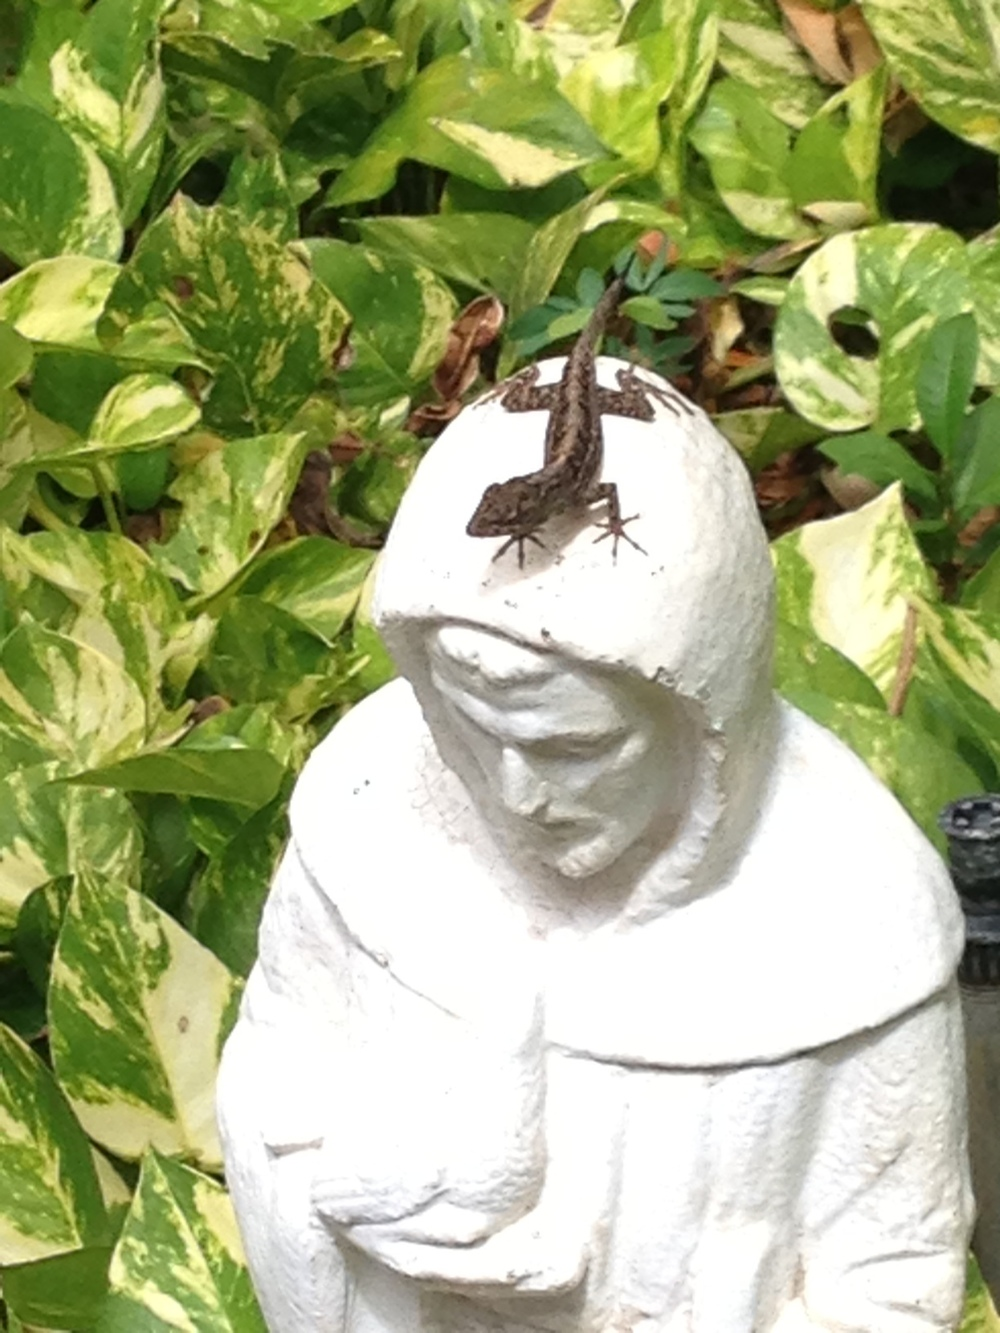 A lizard adorns Francis in the garden